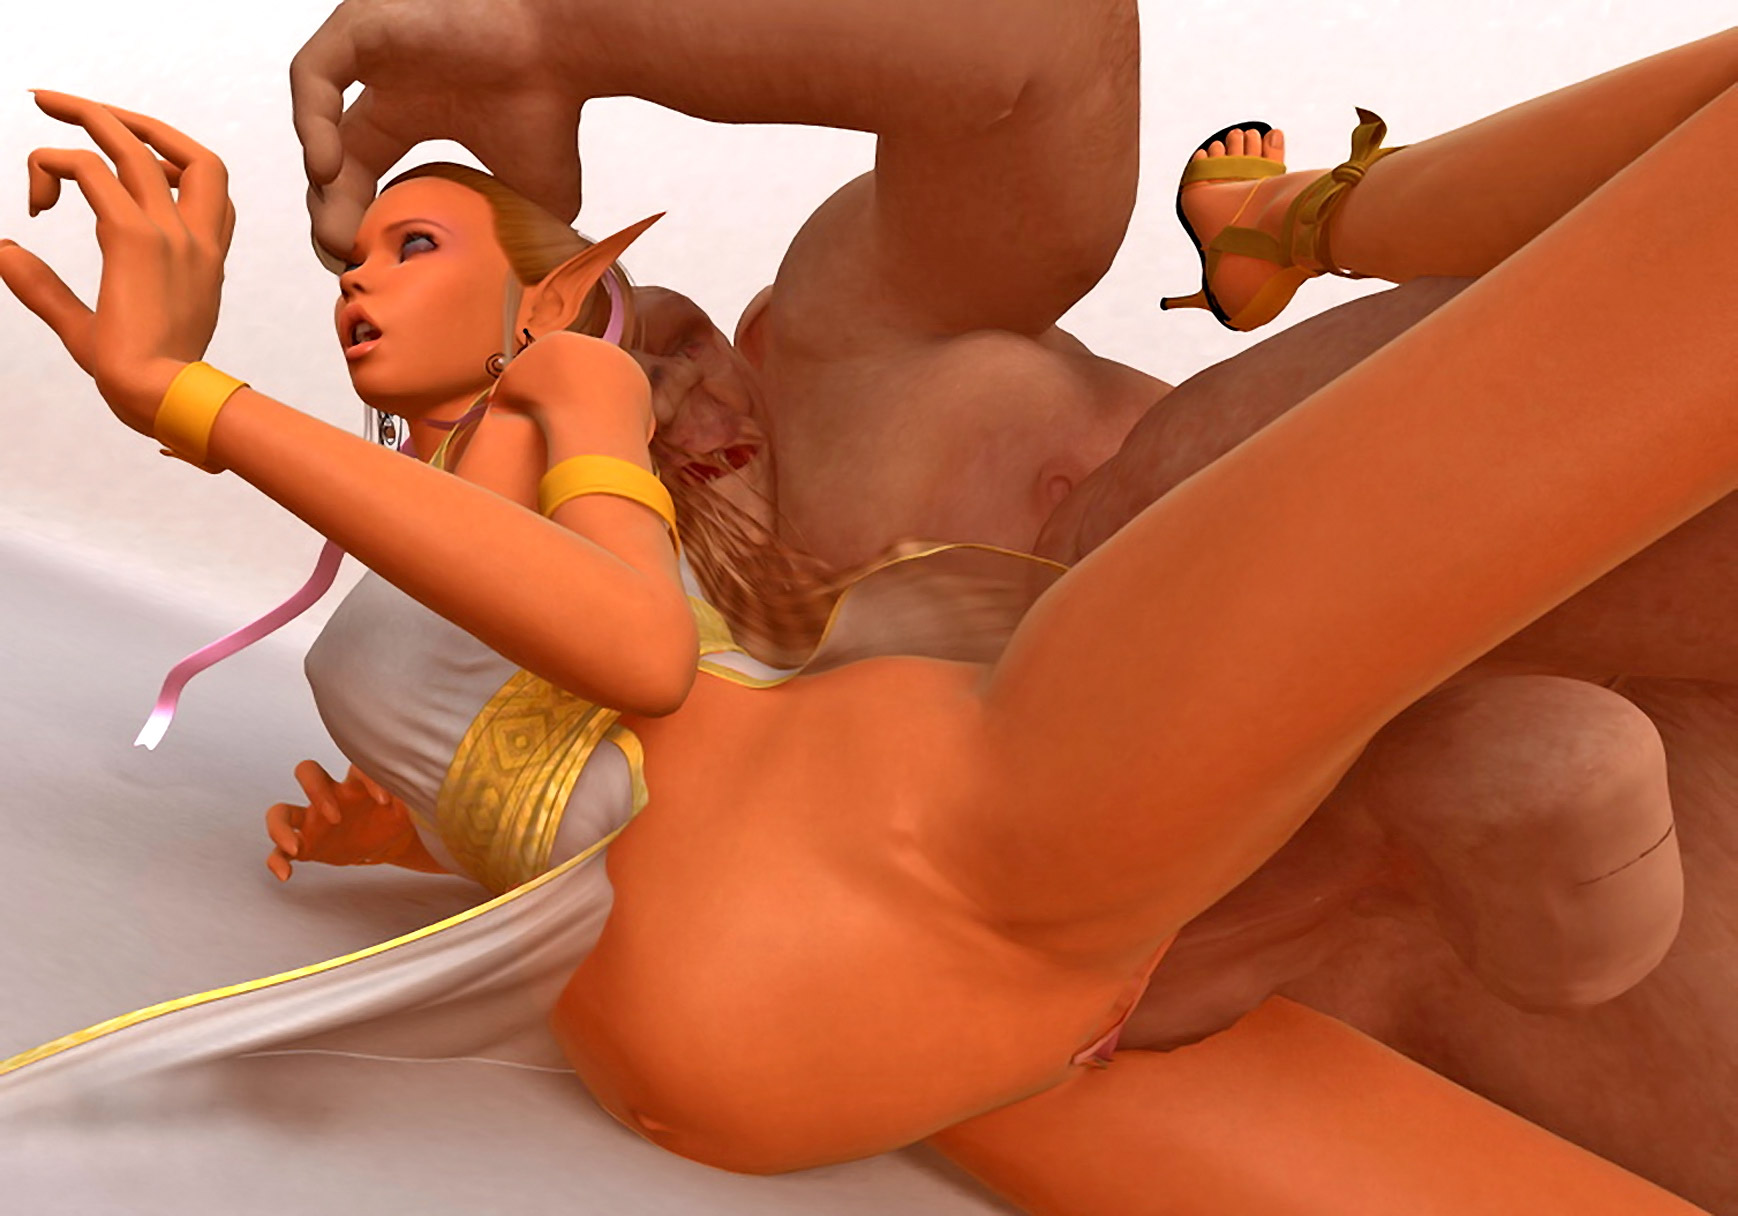 3d fantasy porn hentai video smut scenes